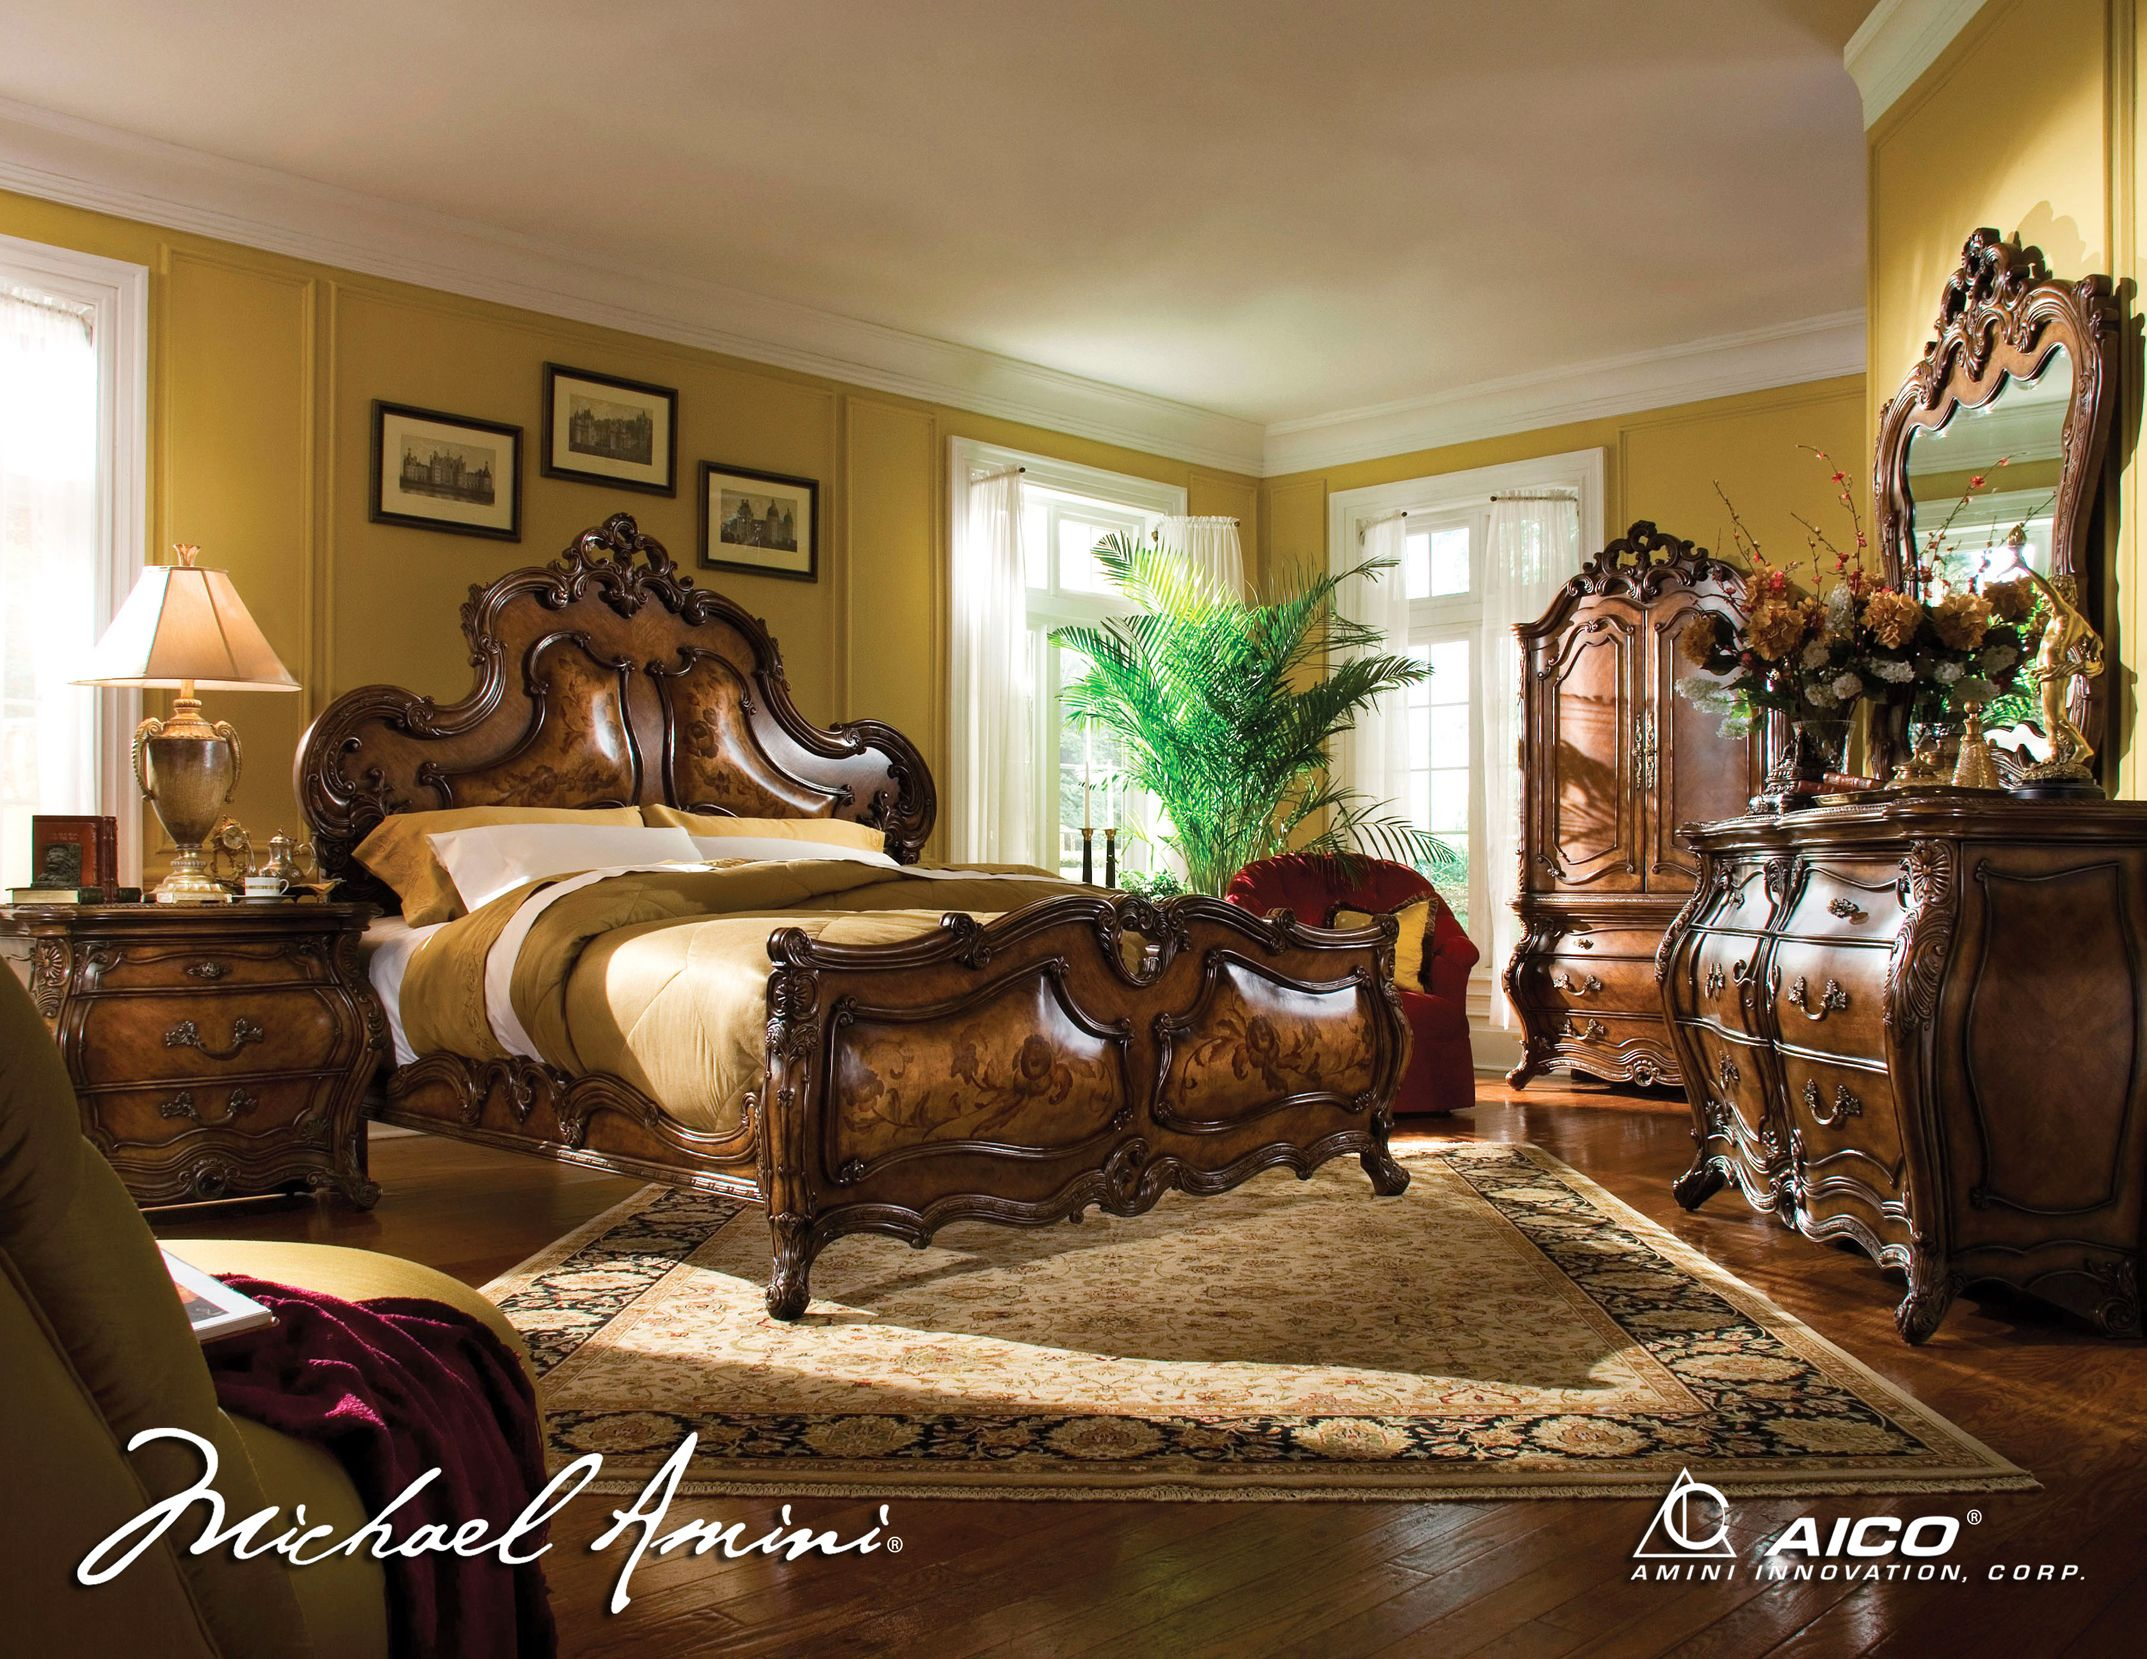 Bedroom Full Size Sets Glamour Queen Set With Rustic Headboard Exciting Cabinetry Mesmerizing